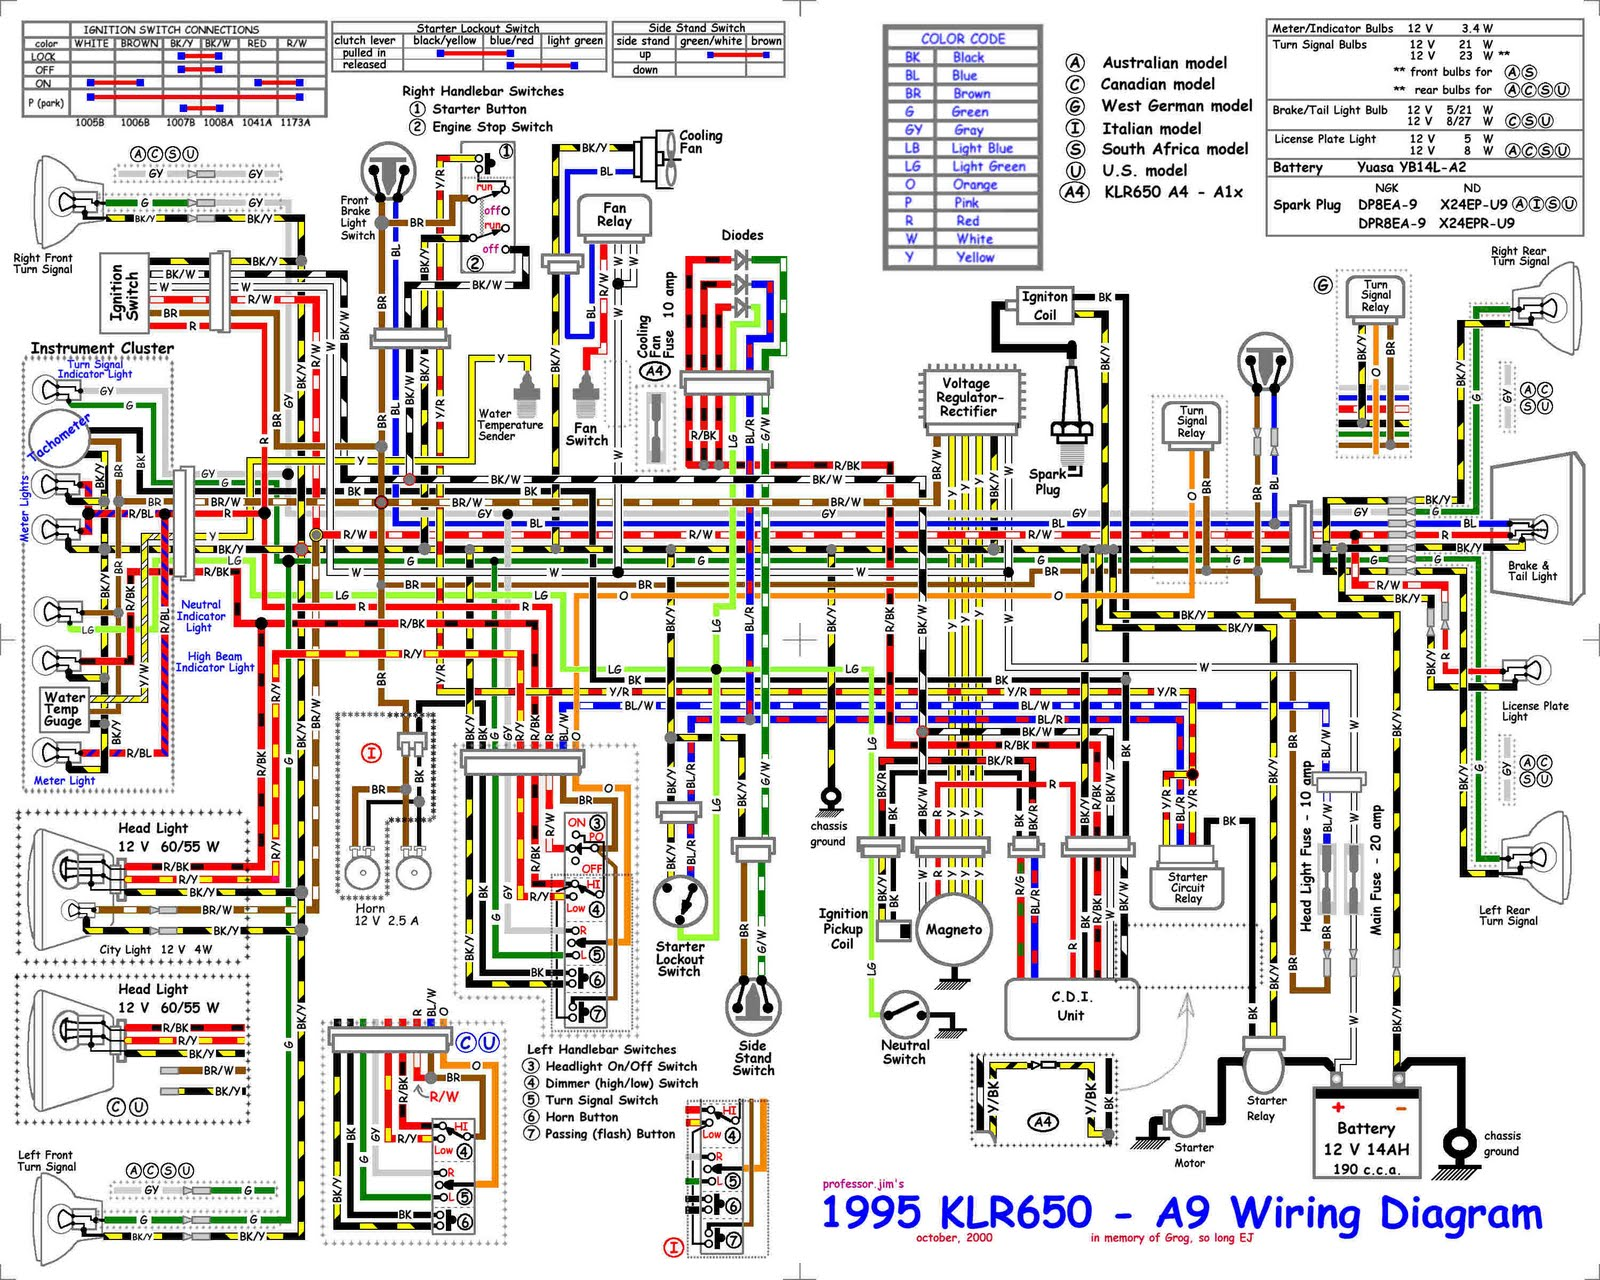 free auto wiring diagram 1974 chevrolet monte carlo wiring diagram rh autowiringdiagram blogspot com Basic Automotive Wiring Diagram Reading Automotive Wiring Schematics